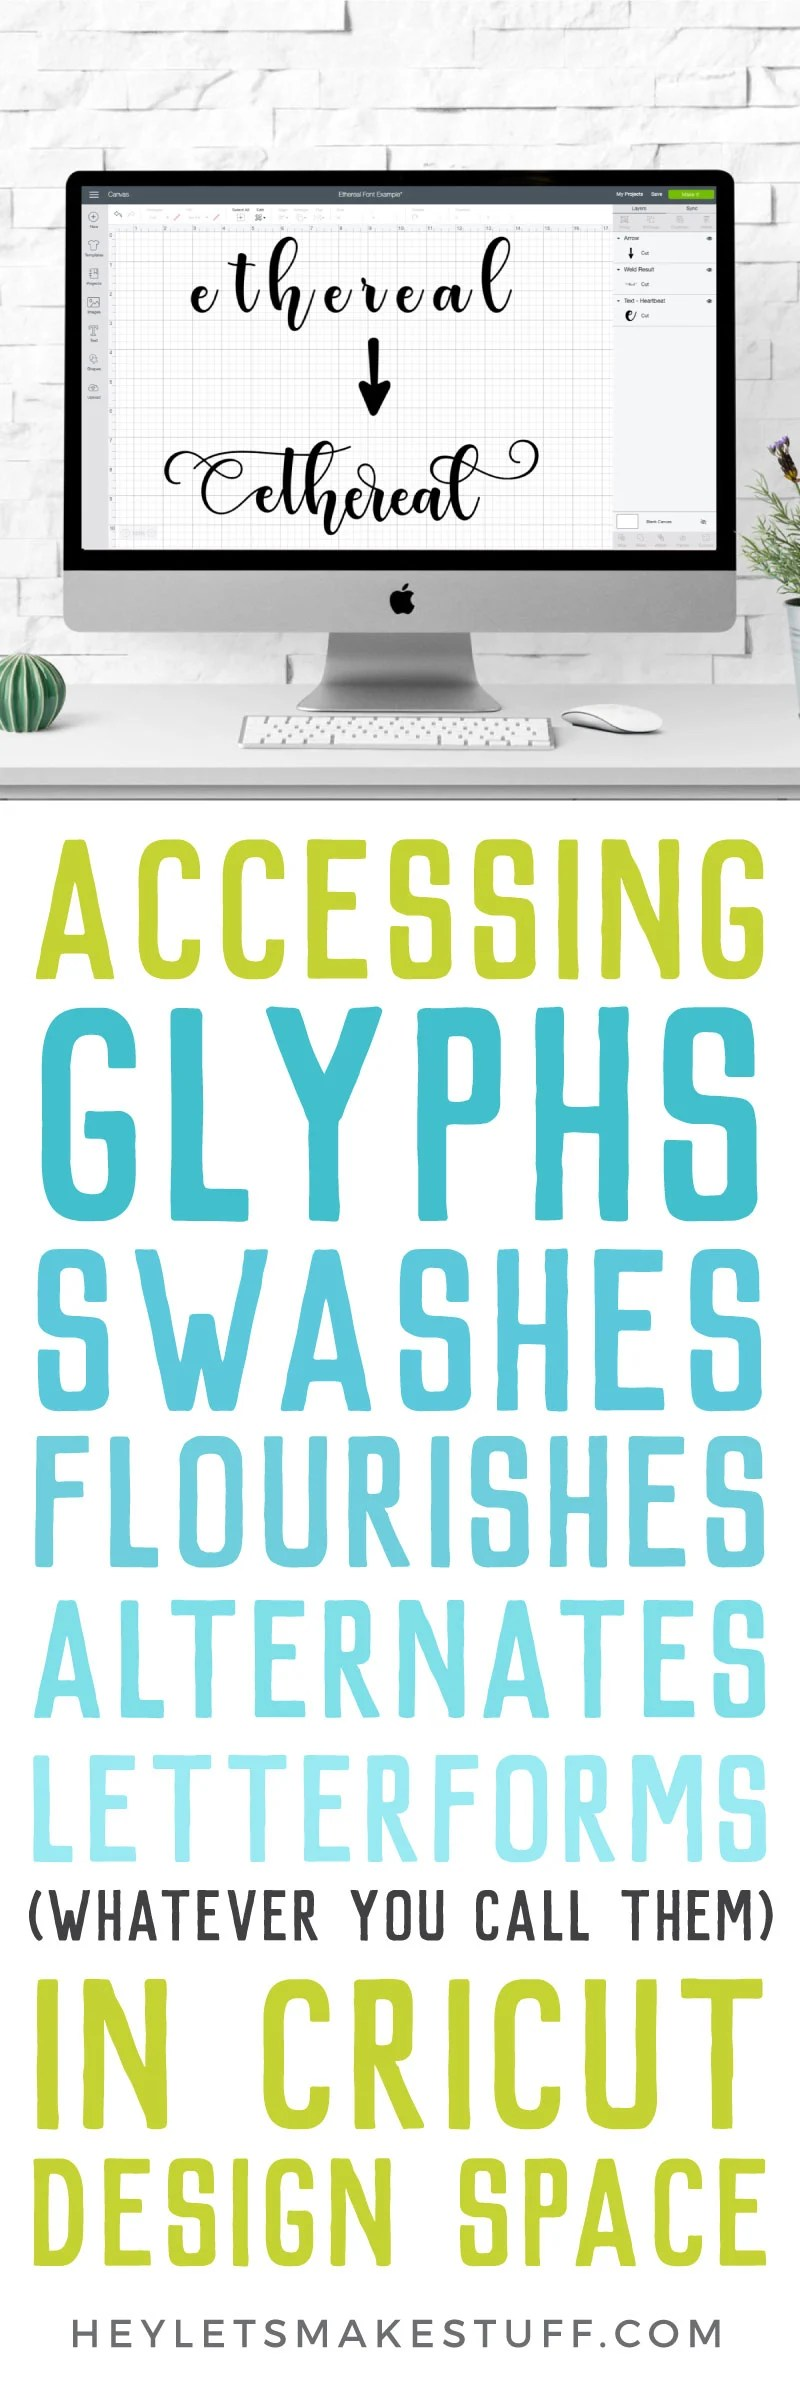 Fonts often come with extras—glyphs, special characters, various letterforms, flourishes, ligatures, stylistic alternatives, and more! Here's how to use these glyphs in Cricut Design Space to make your designs even more unique.  via @heyletsmakestuf